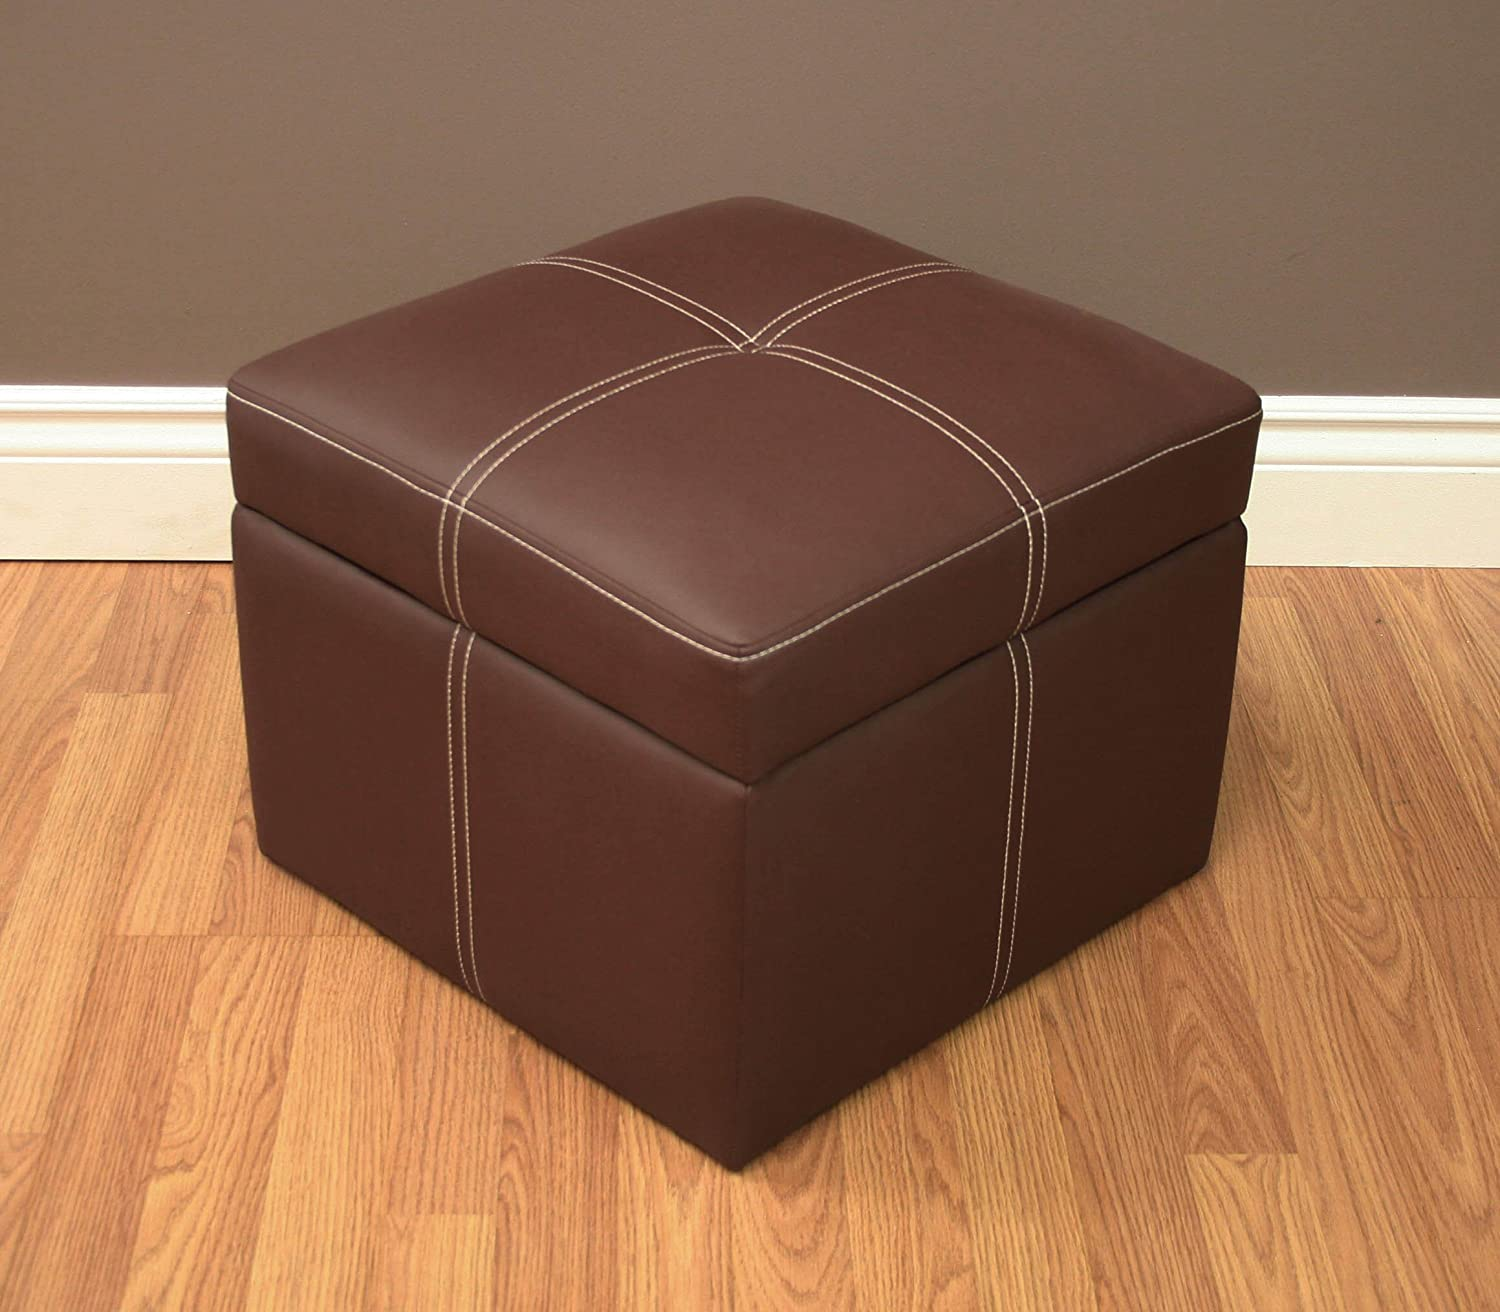 Amazon.com: DHP Delaney Small Square Storage Orroman   Brown: Kitchen U0026  Dining